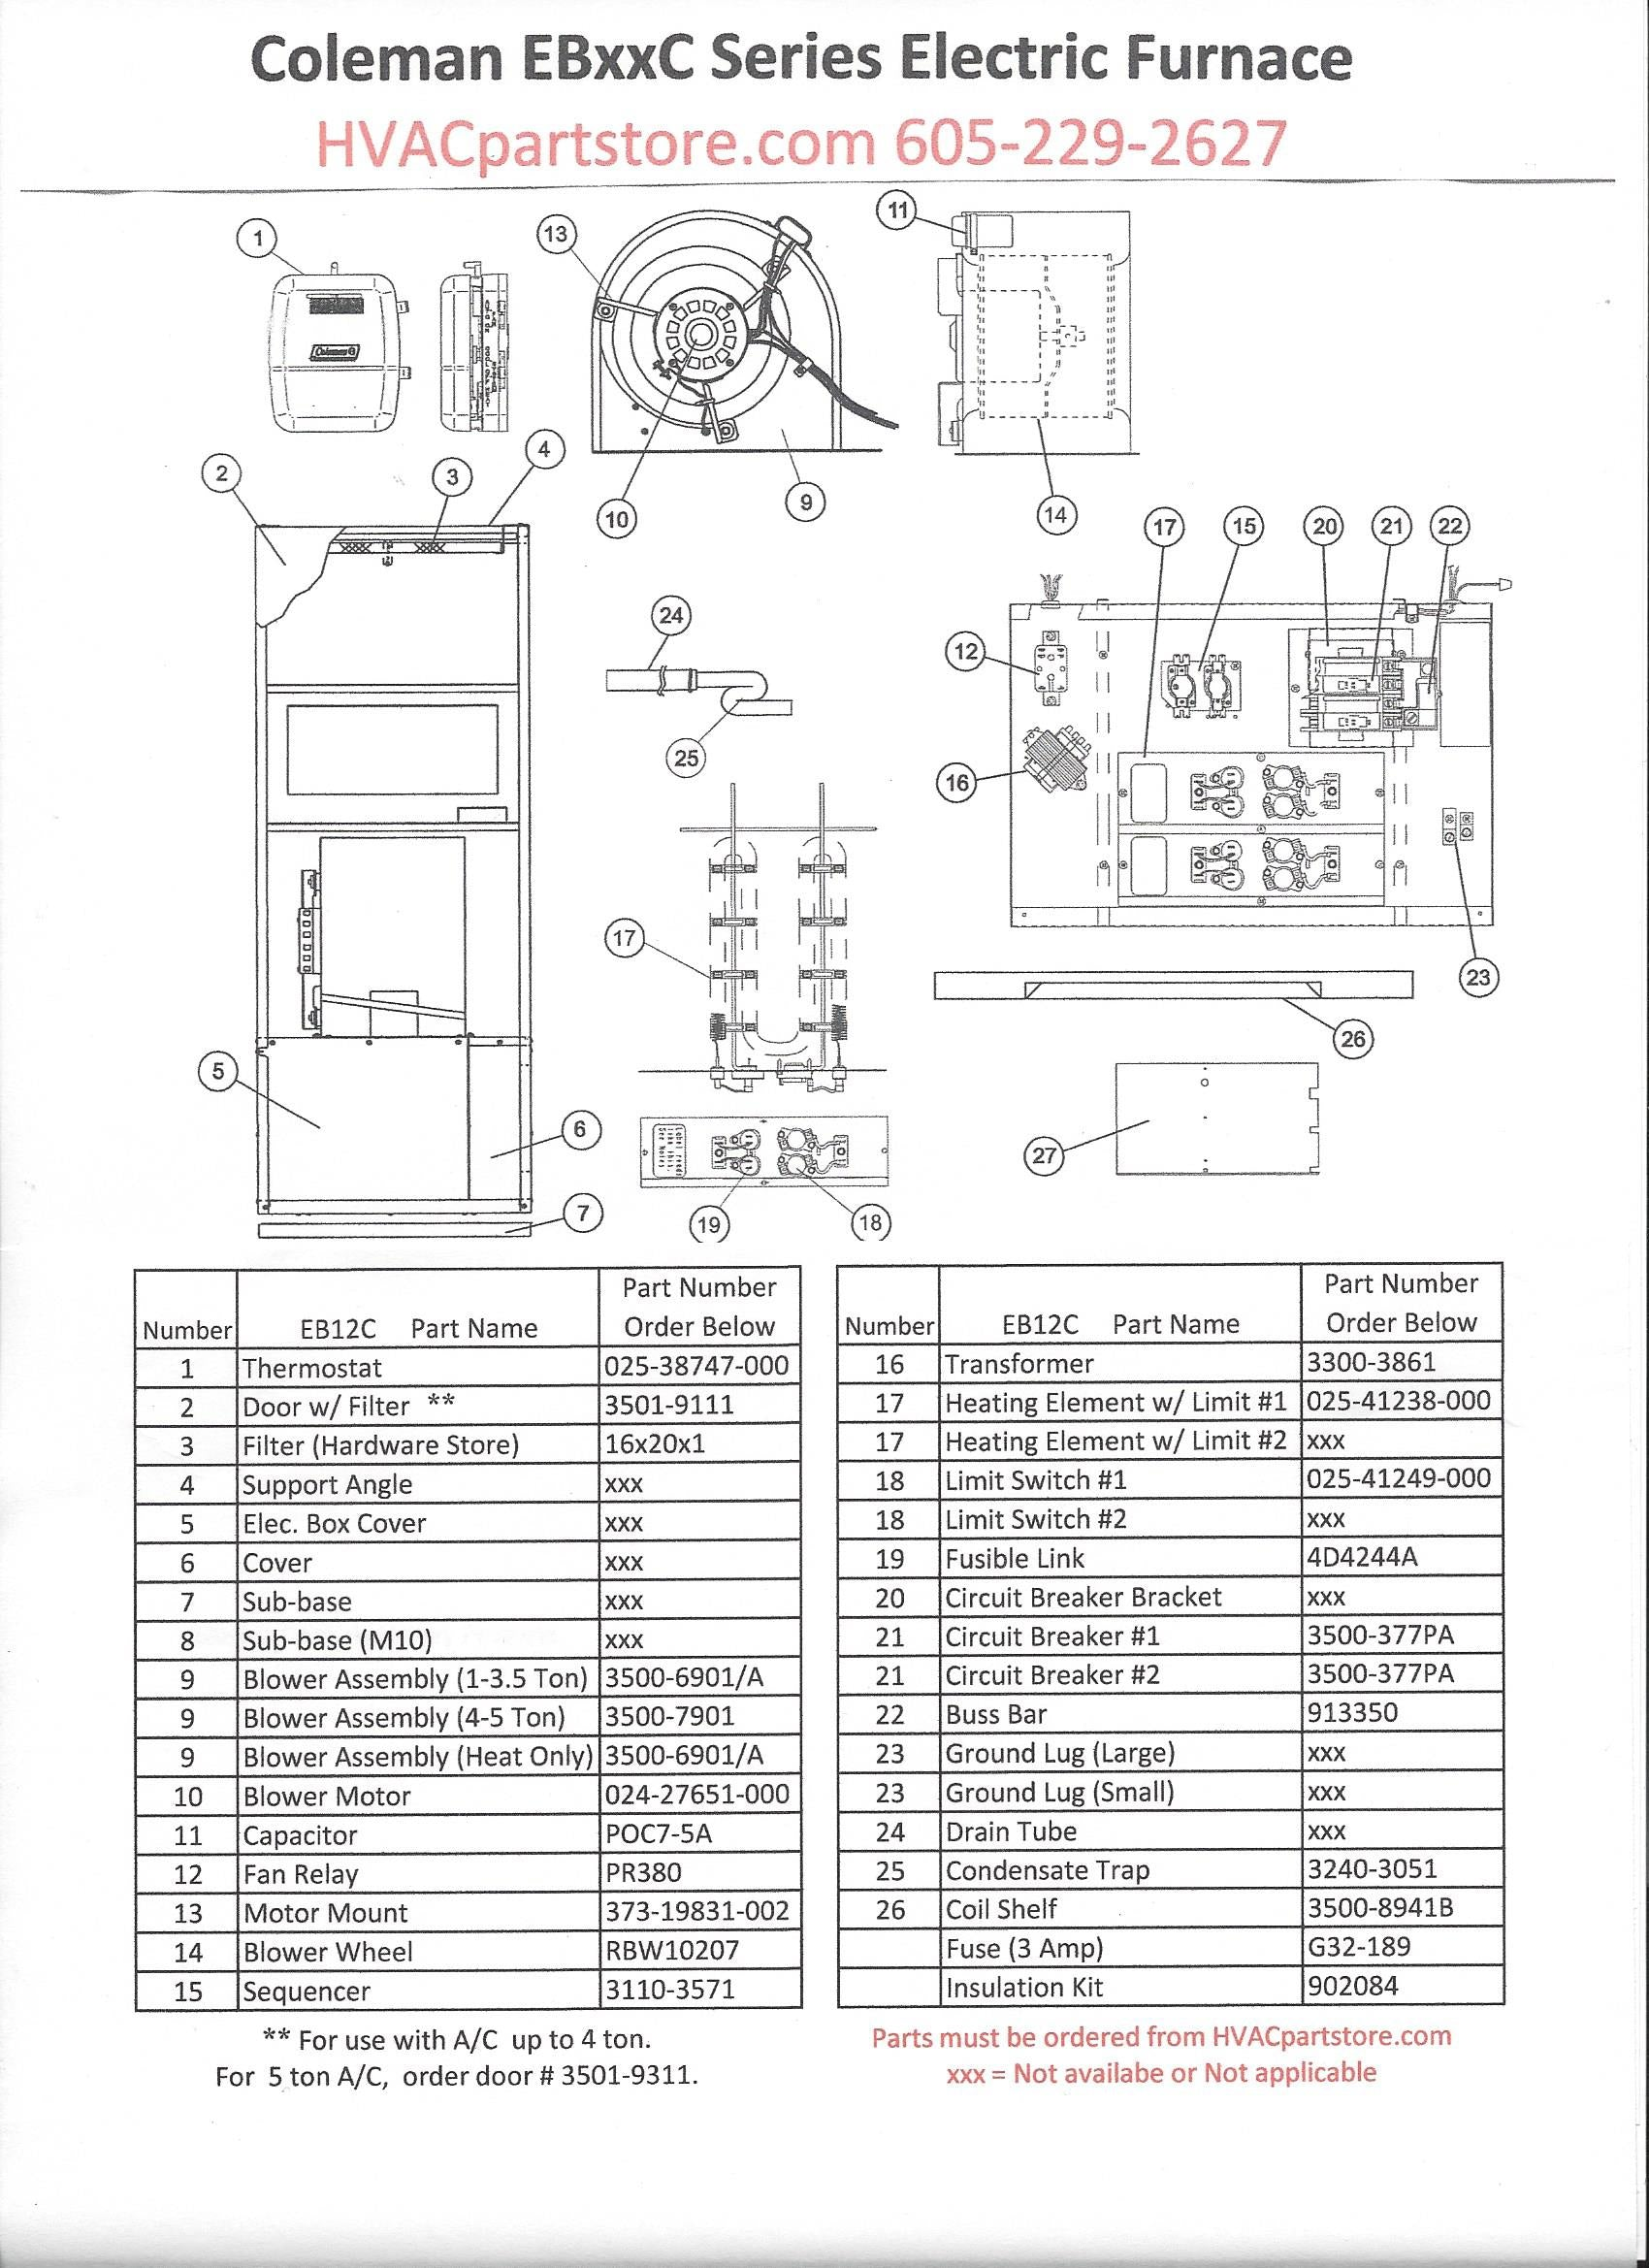 eb12c coleman electric furnace parts  u2013 hvacpartstore